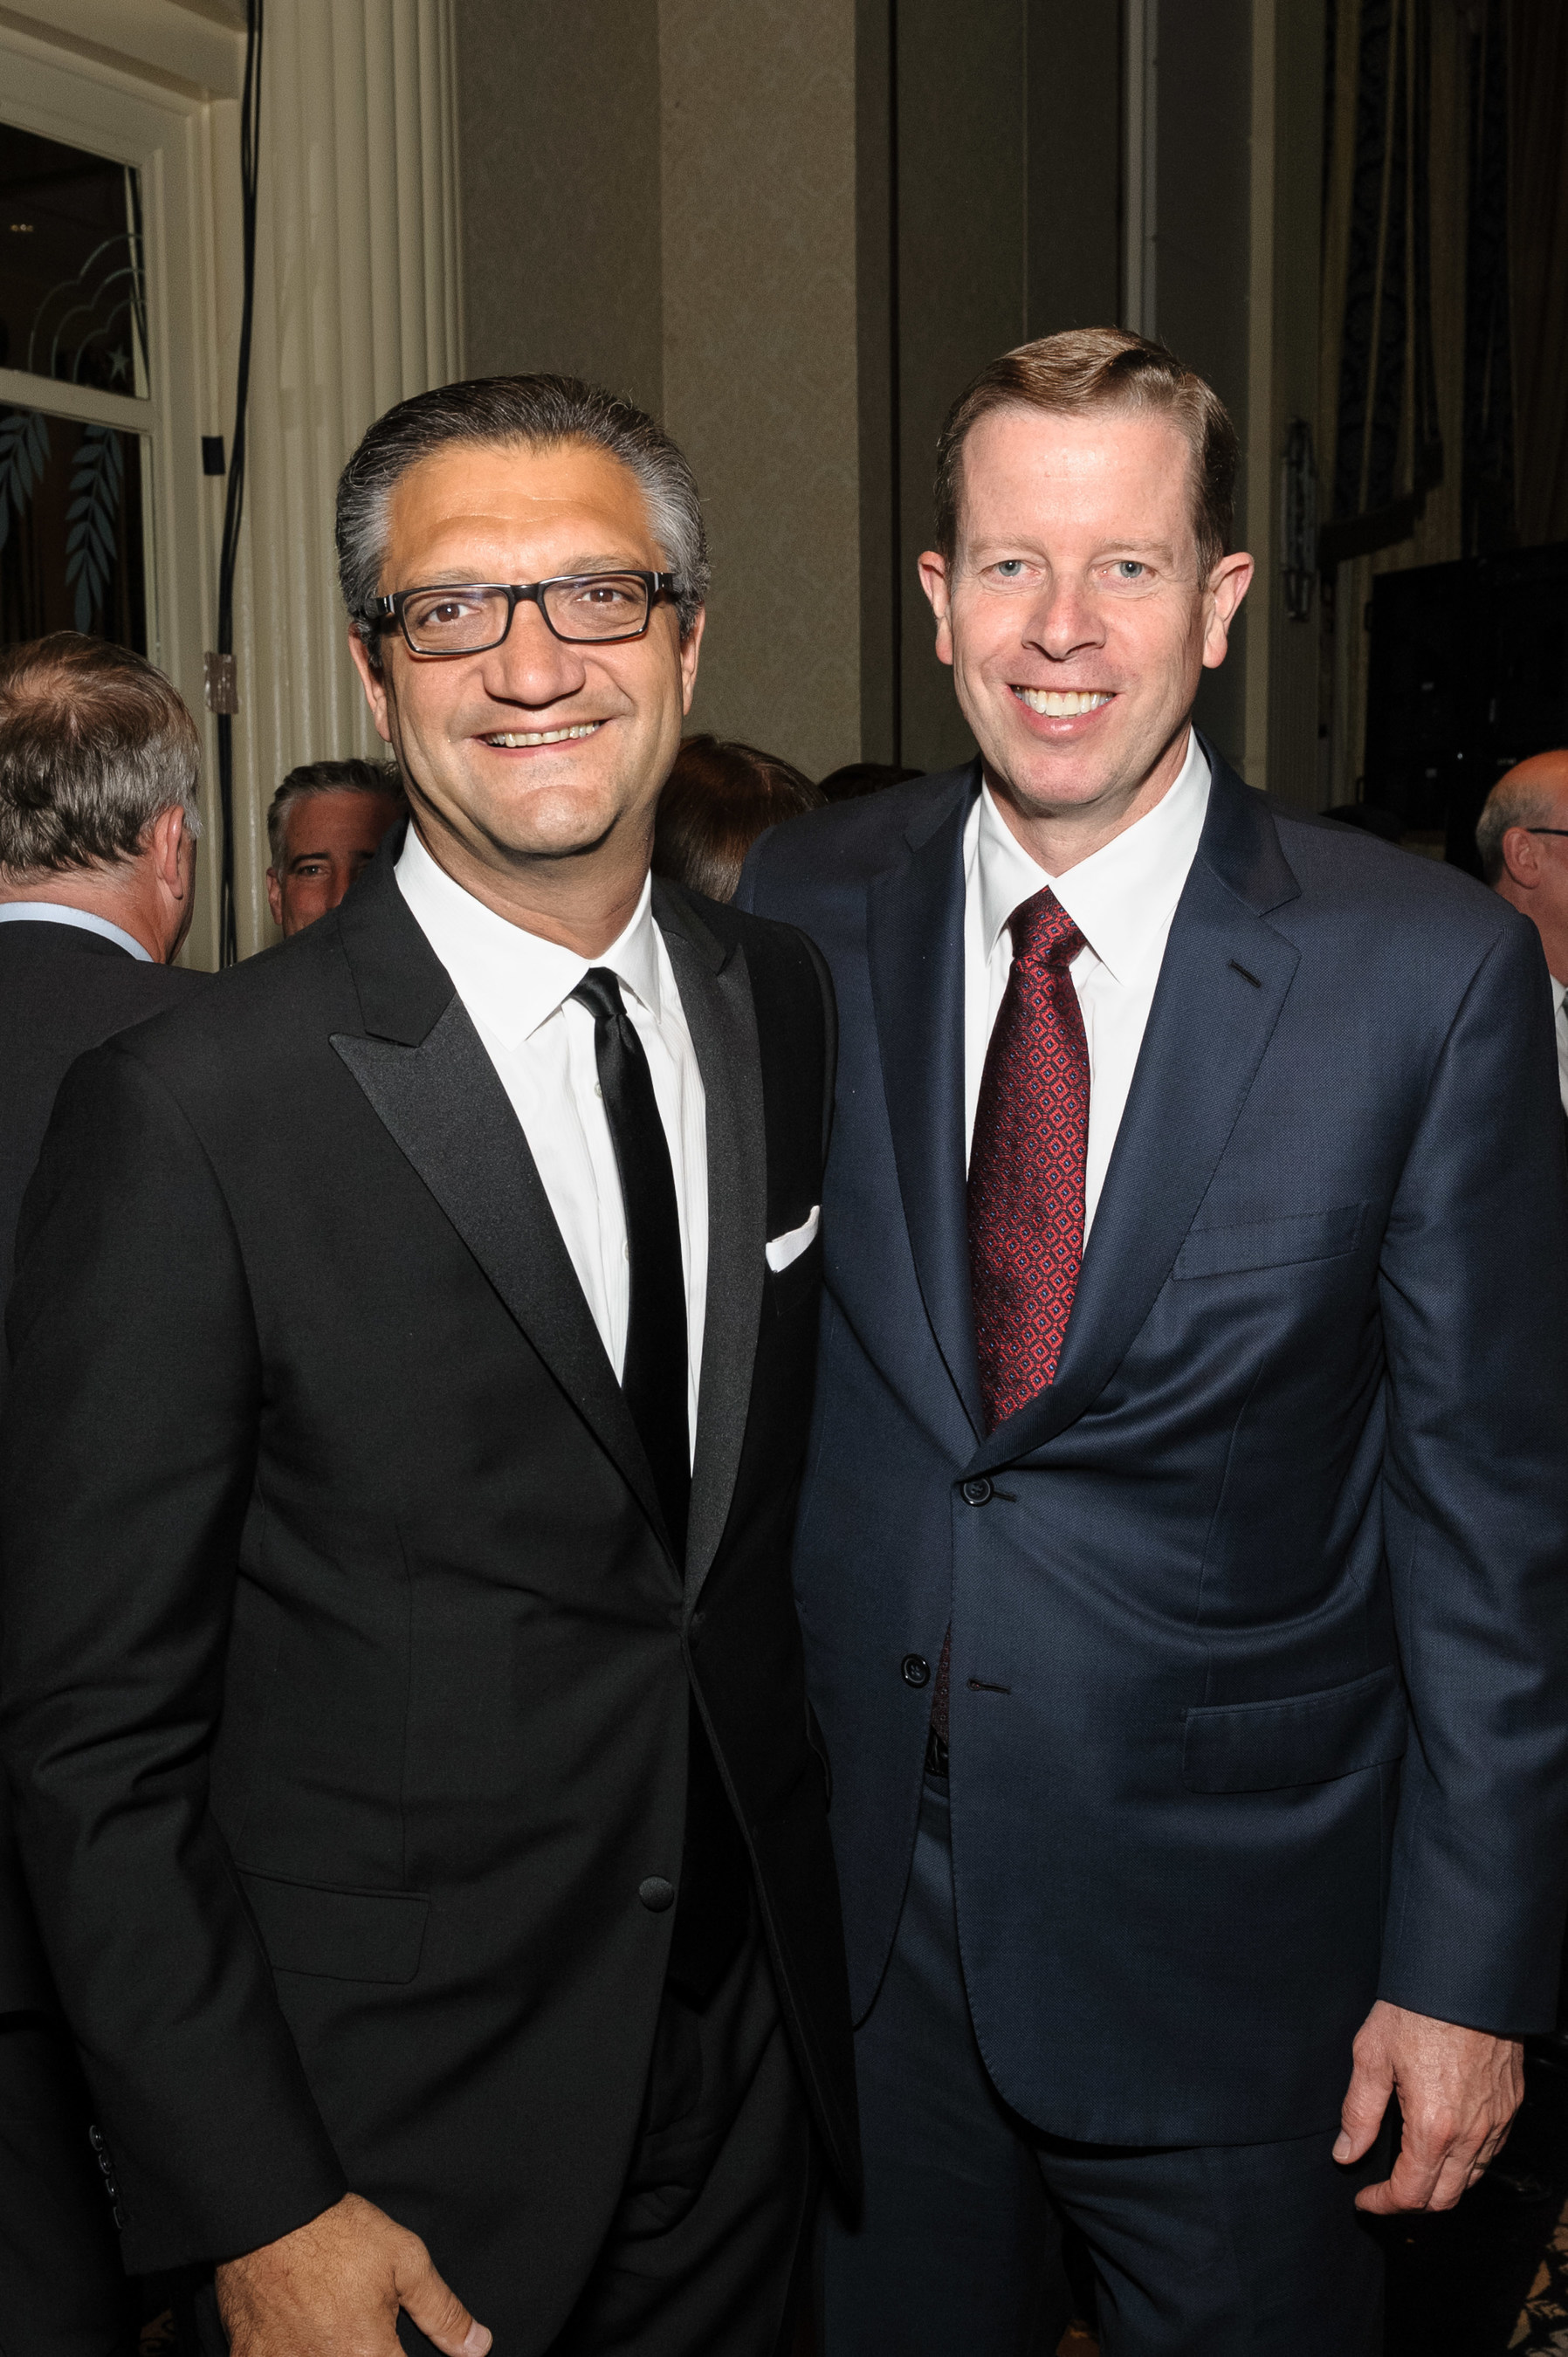 """Ronald McDonald House New York 23rd Annual Gala Honorees Emanuel """"Manny"""" Chirico and Keith S. Sherin."""